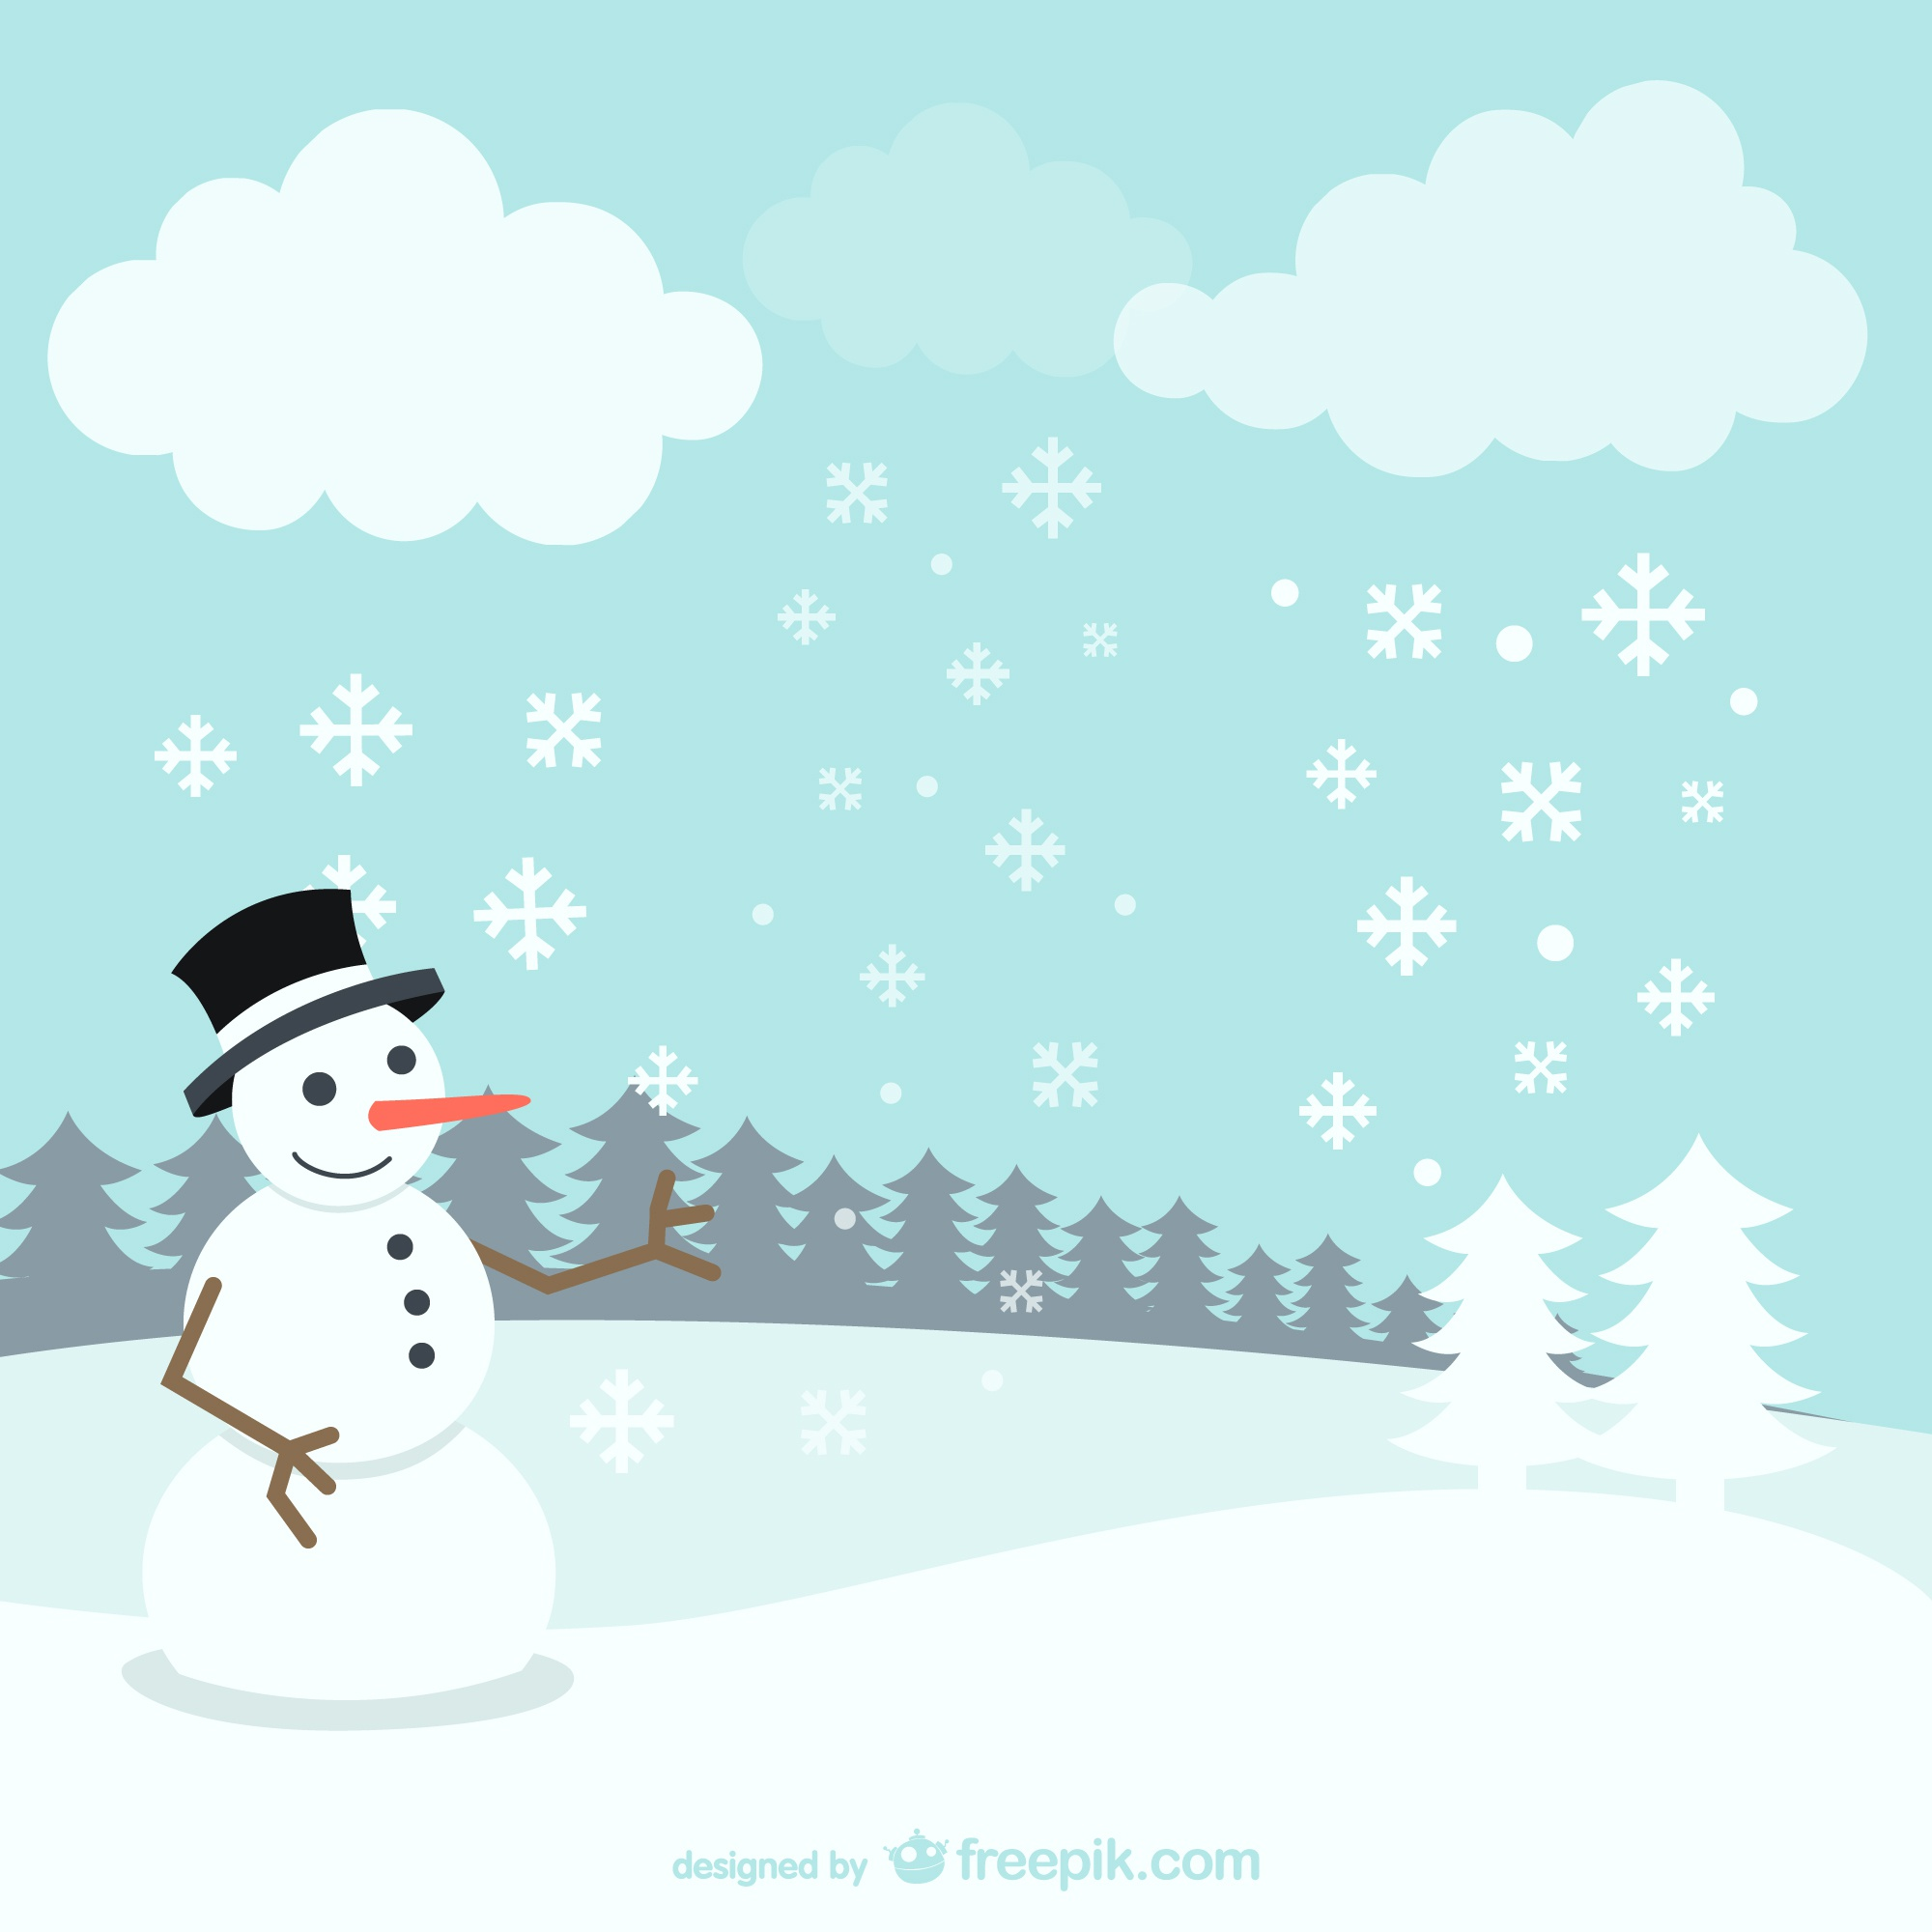 Winter landscape with snowman